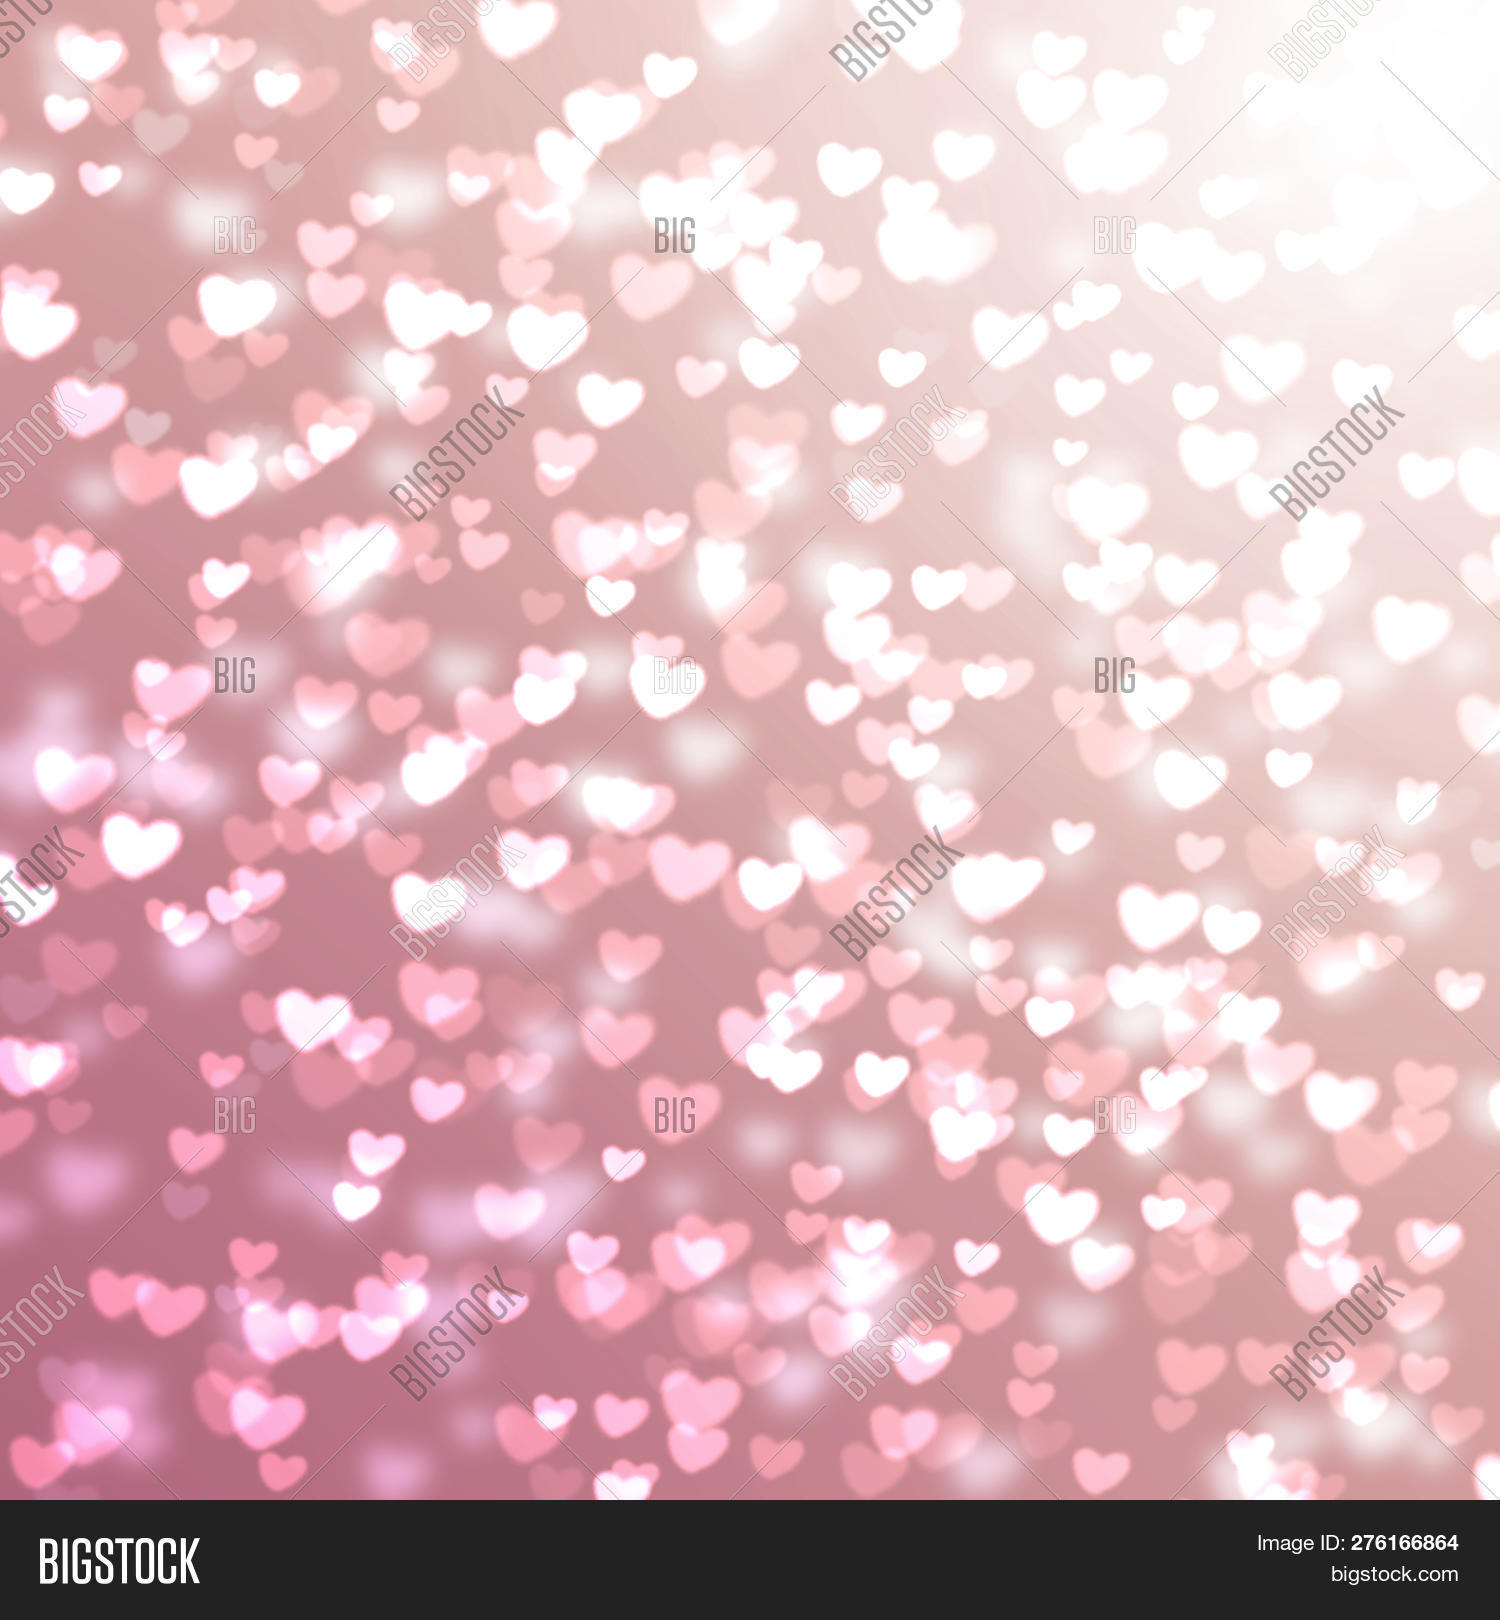 Abstract,Valentine,Valentine's,background,blurred,bokeh,bright,color,day,decoration,design,for,gradient,heart,holiday,illustration,light,love,lovely,map,paper,pink,romance,romantic,shape,shiny,sparkle,wall,with